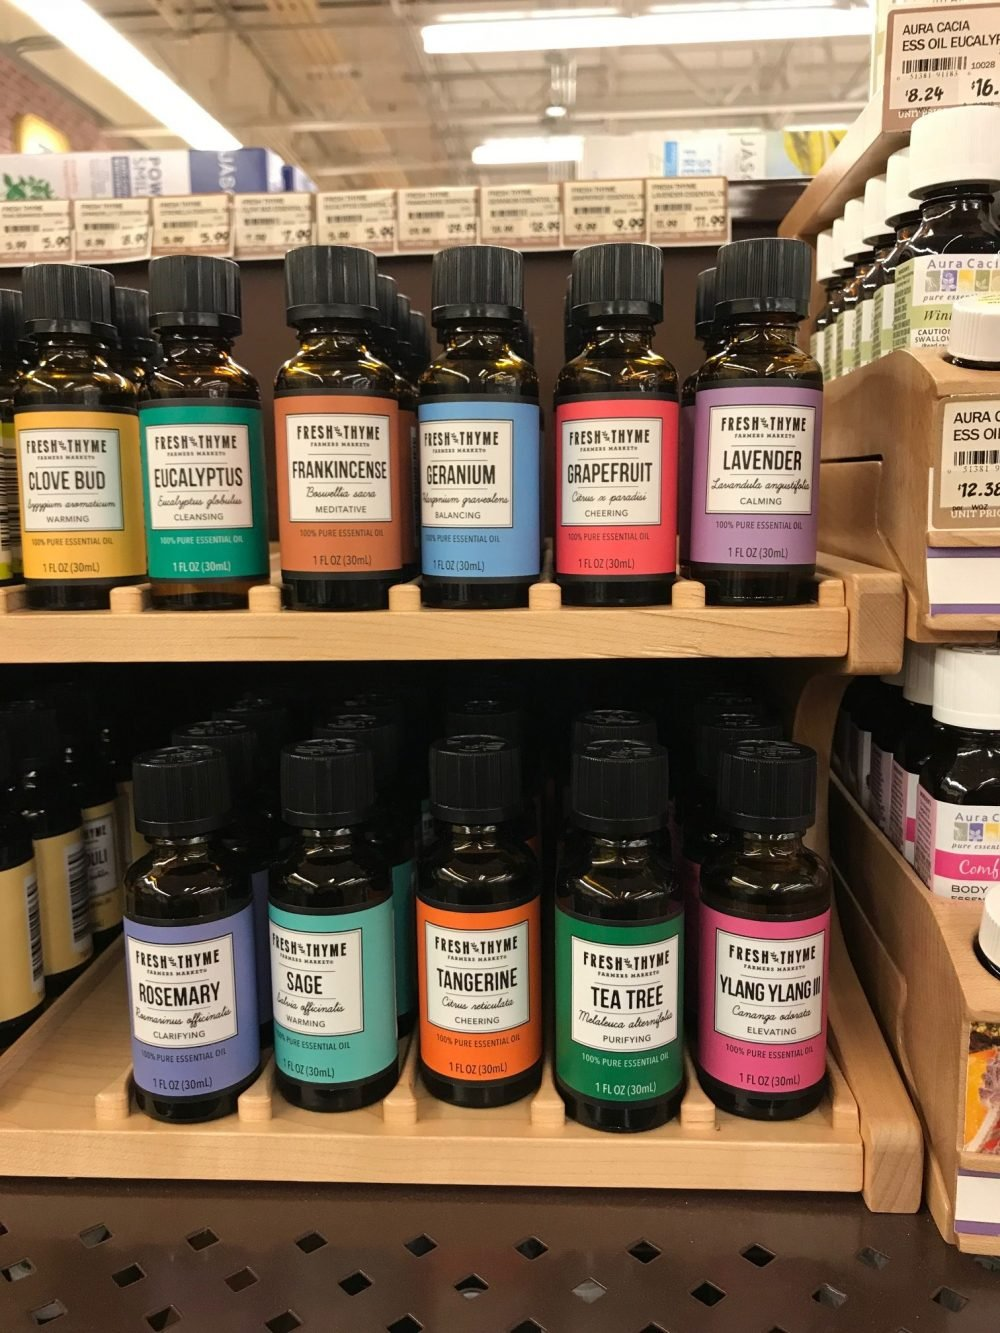 Small bottles of essential oils lined up next to each other